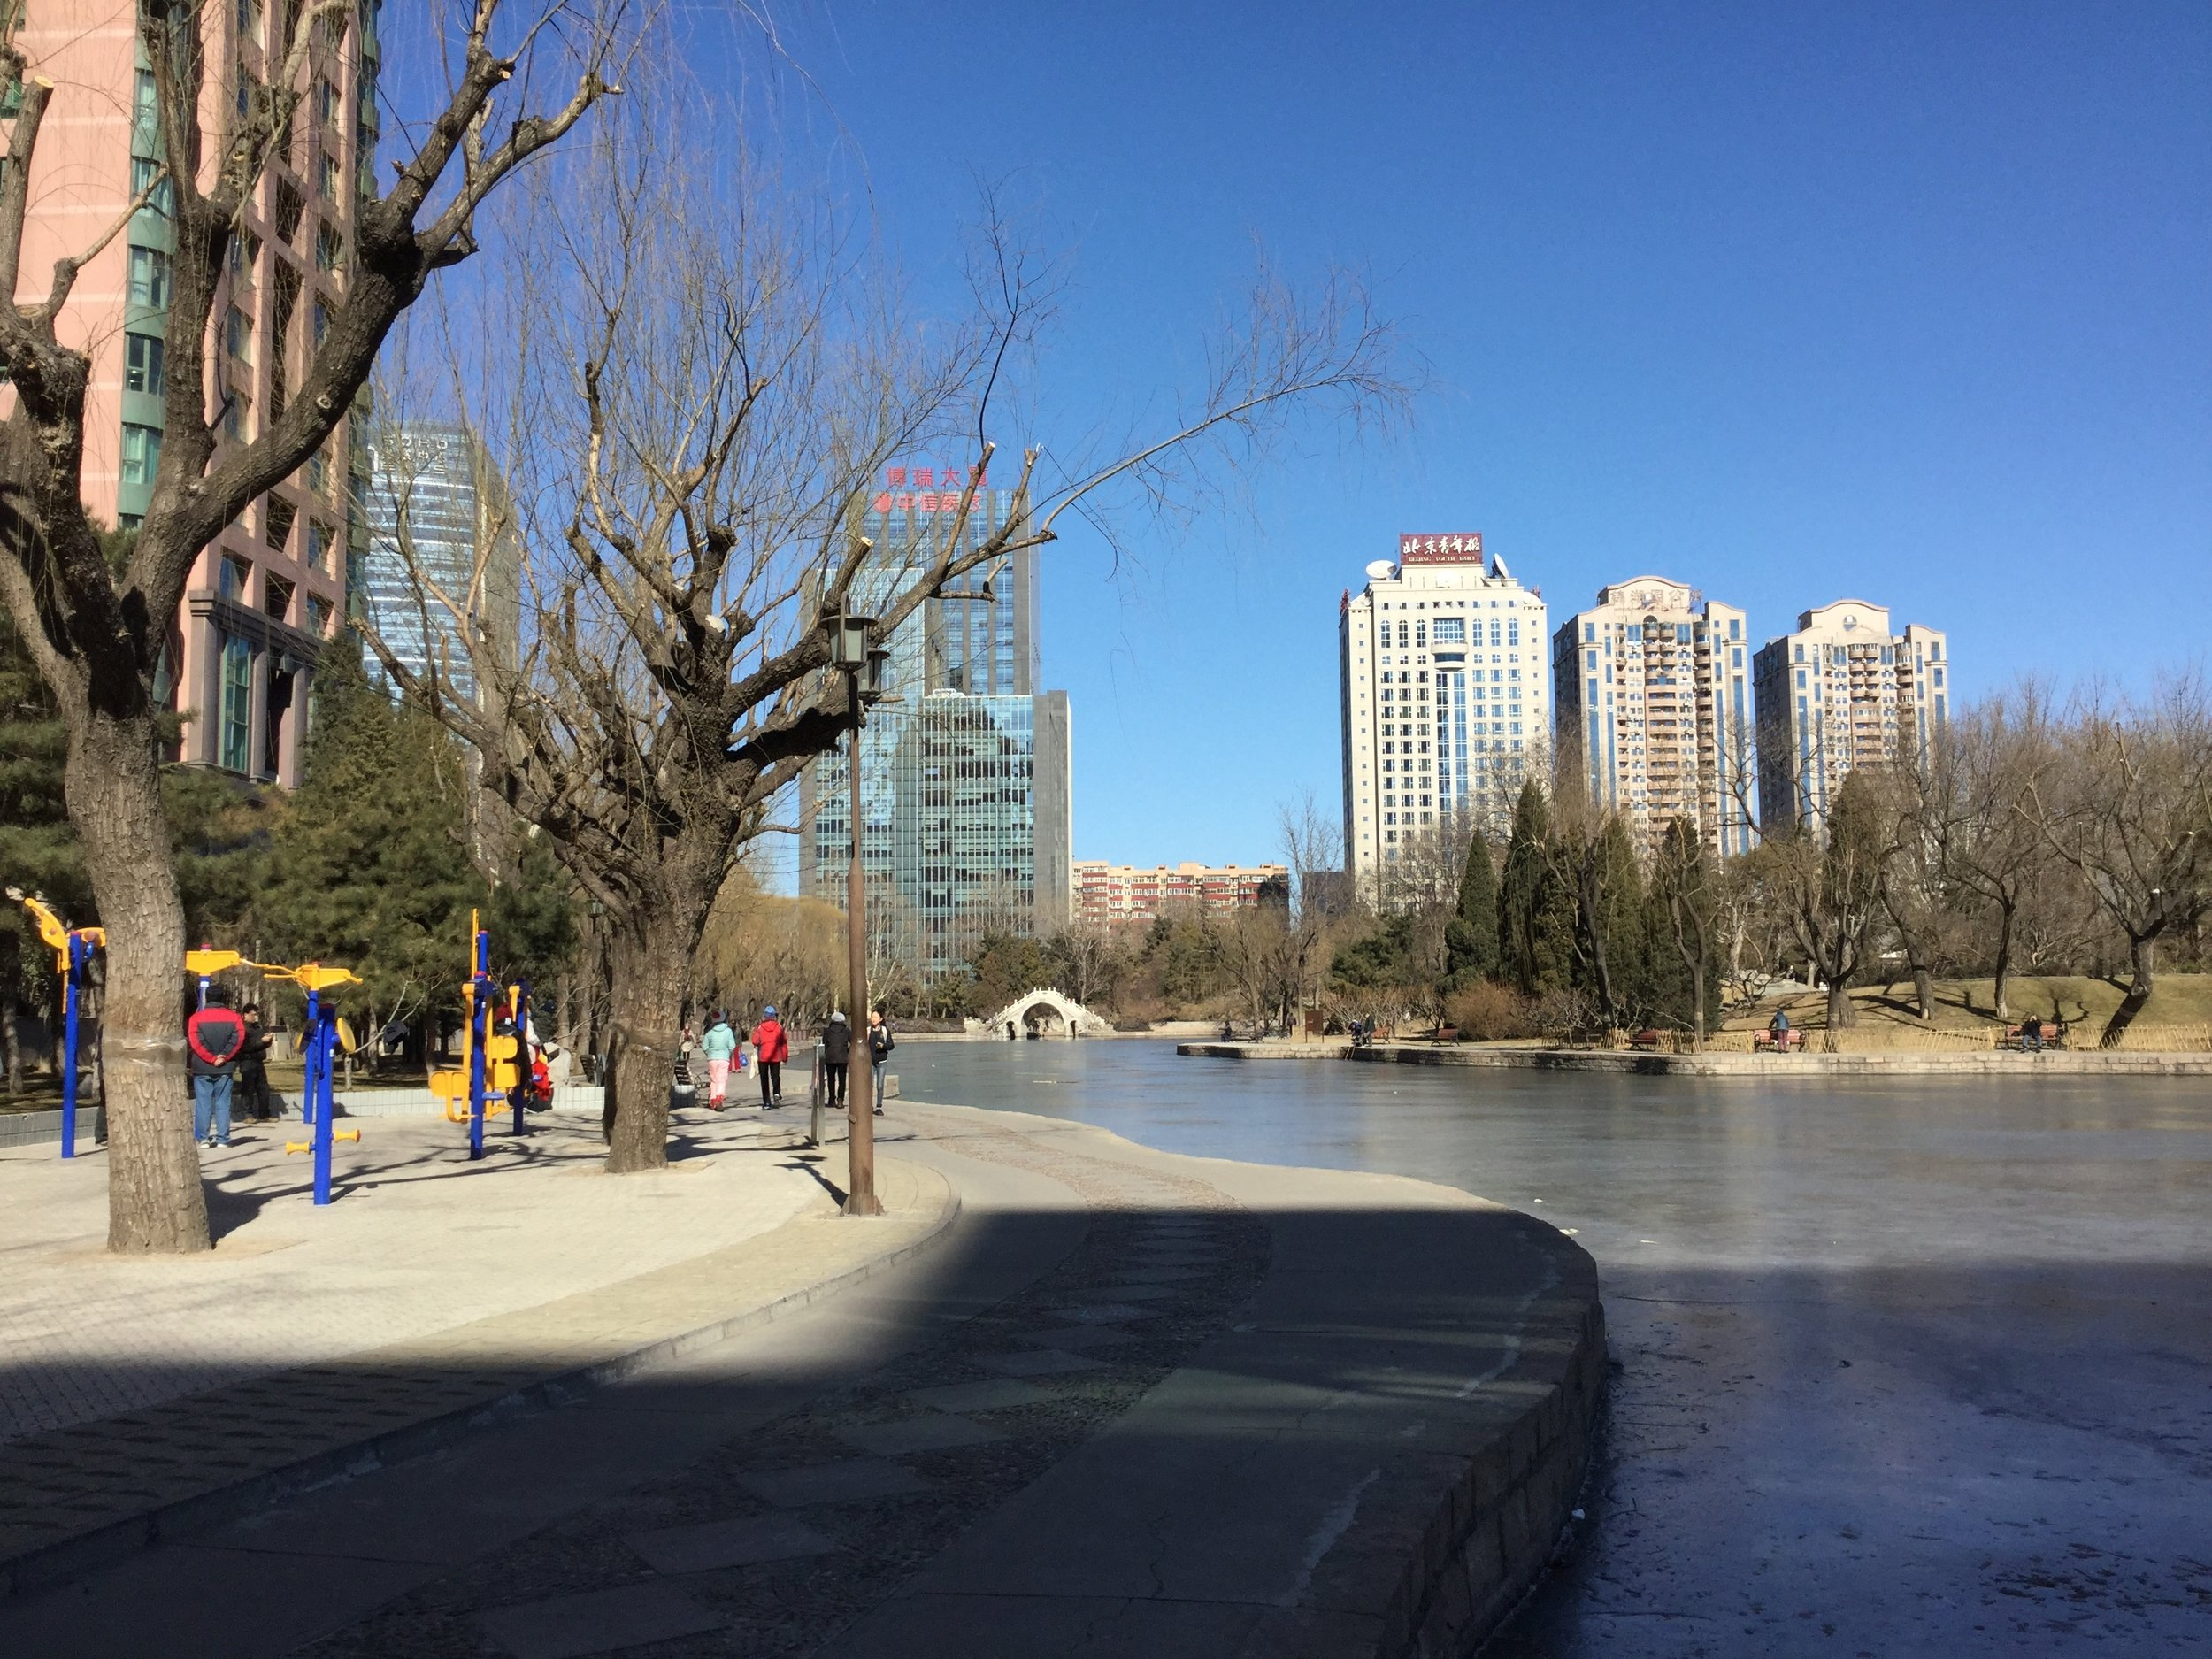 I spent my first full day in Beijing exploring Tuanjiehu Park, taking in the sun and the crisp air. It was so lovely to watch people during their group dance classes and using the outdoor exercise areas. My favourite memory is seeing a grandfather showing his son and grandson how to do chin-ups.